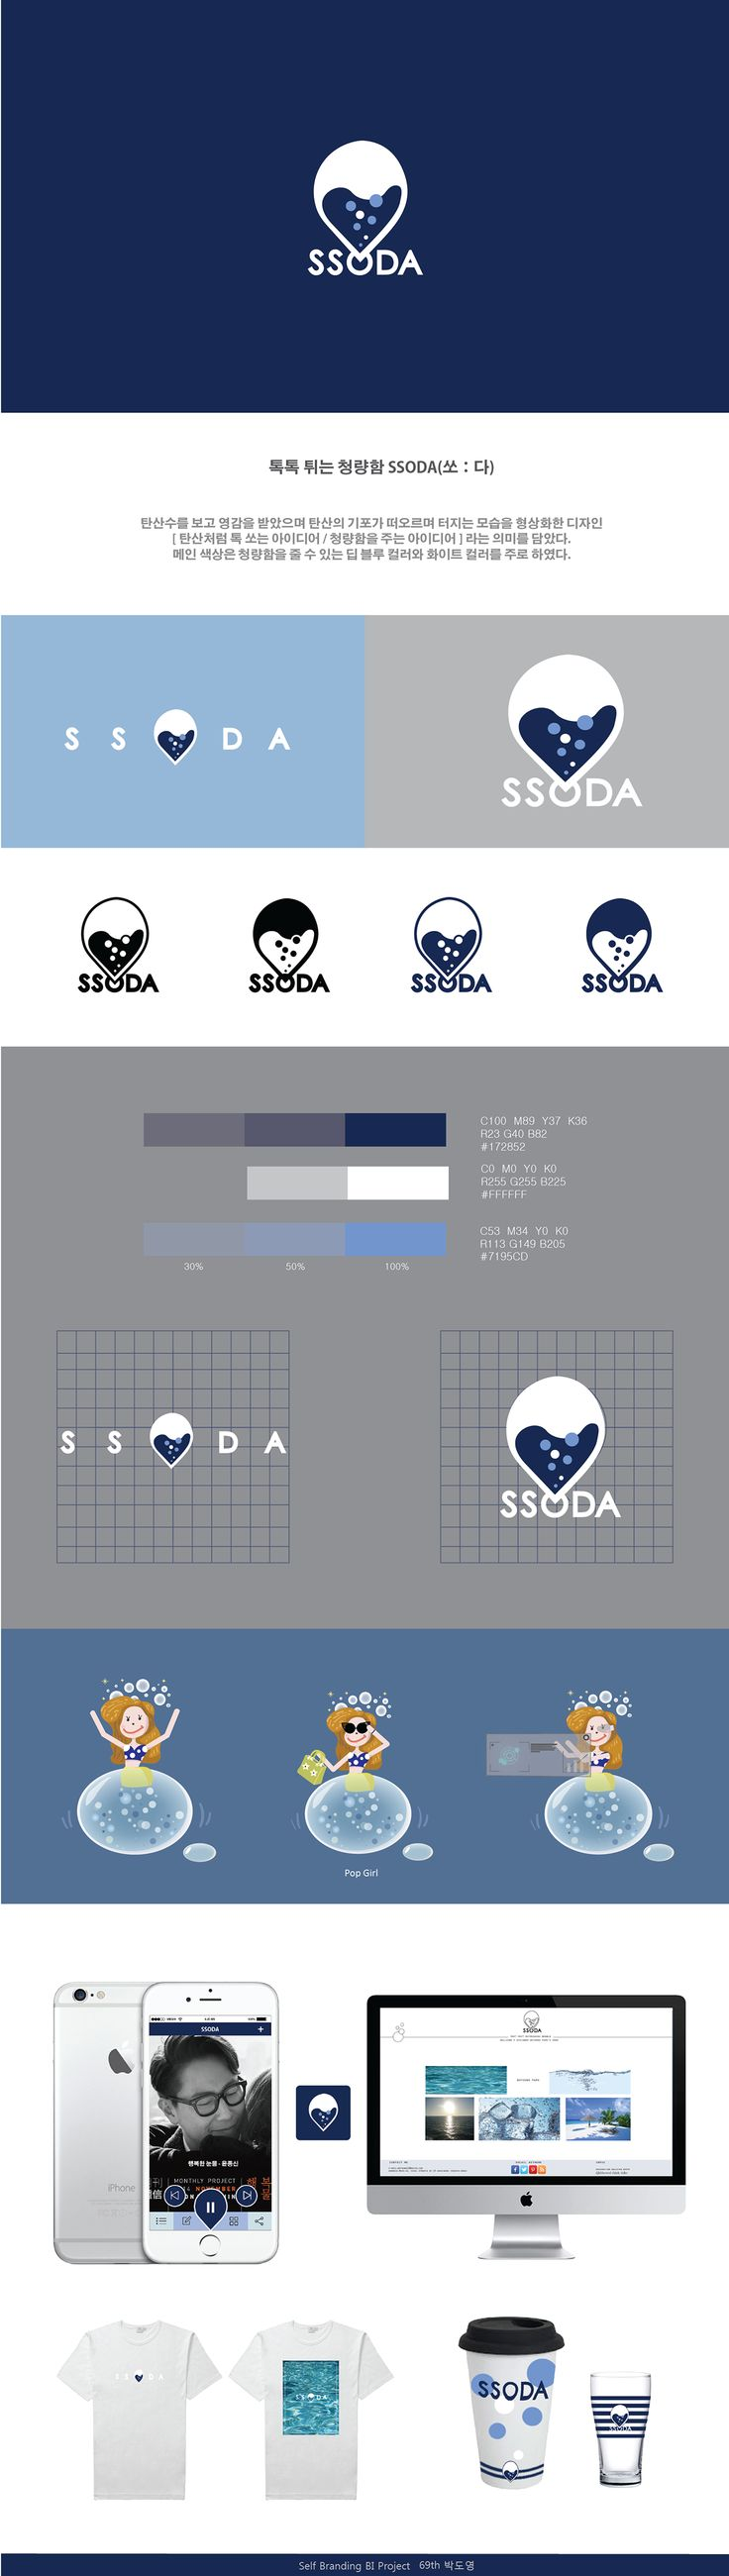 SSODA on Behance